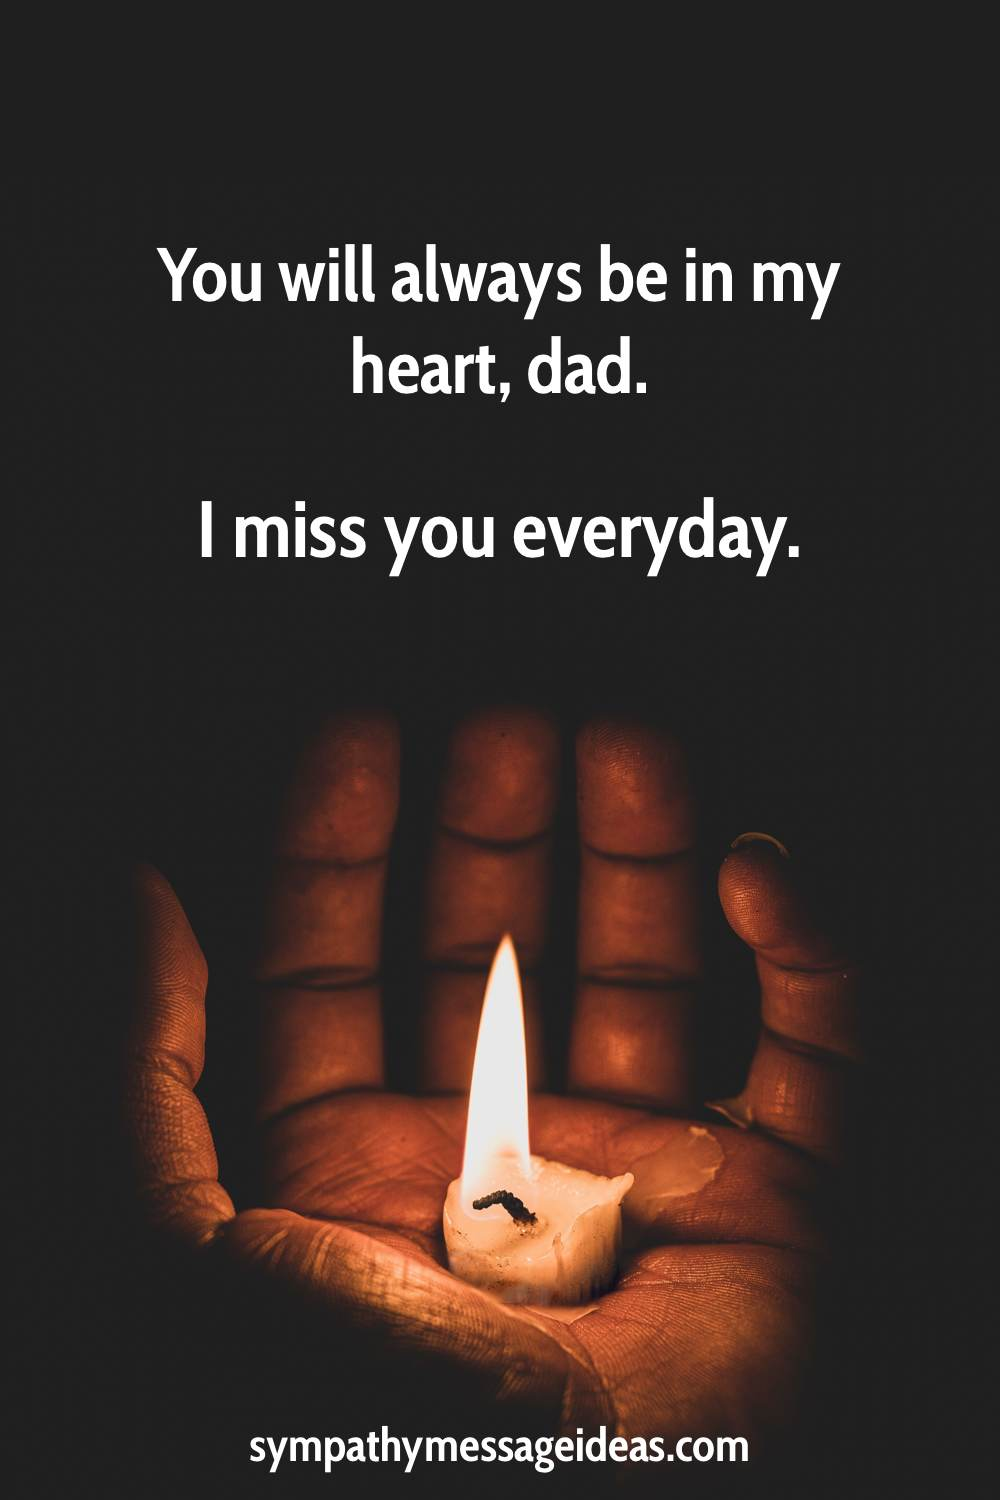 I miss you dad every day quote